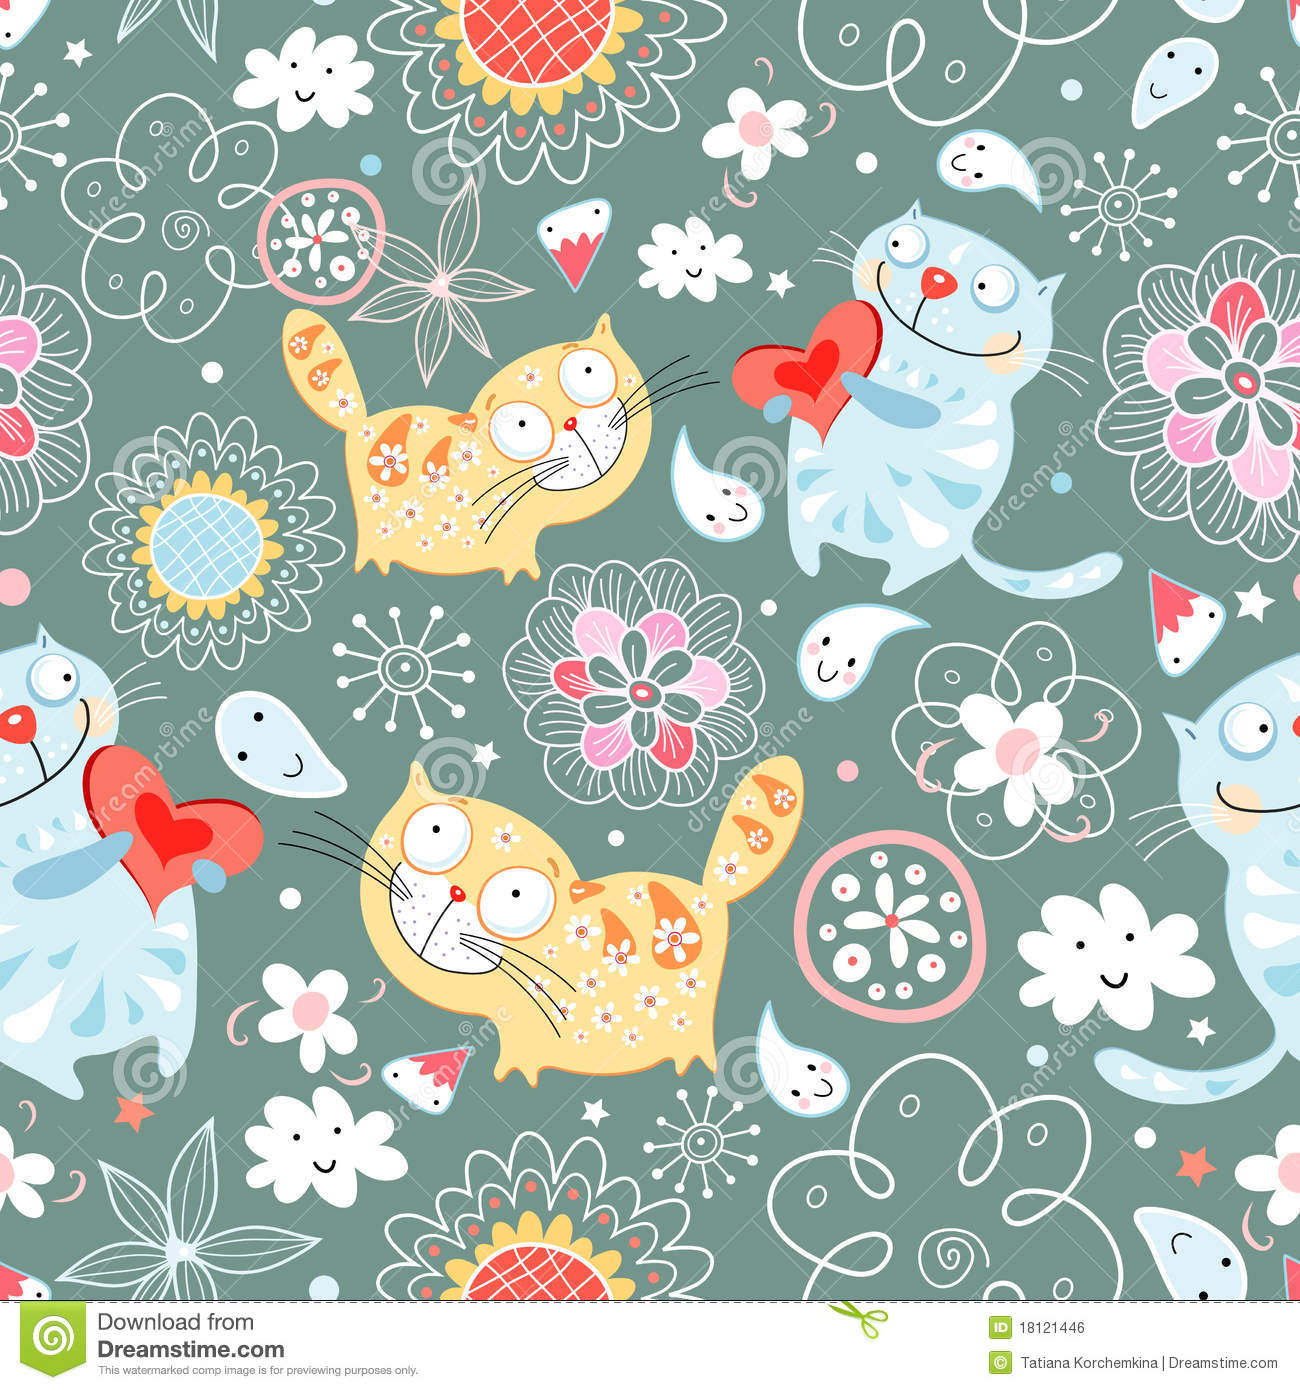 Cute Halloween Cat Wallpaper Seamless Pattern Of Cat Lovers Royalty Free Stock Image